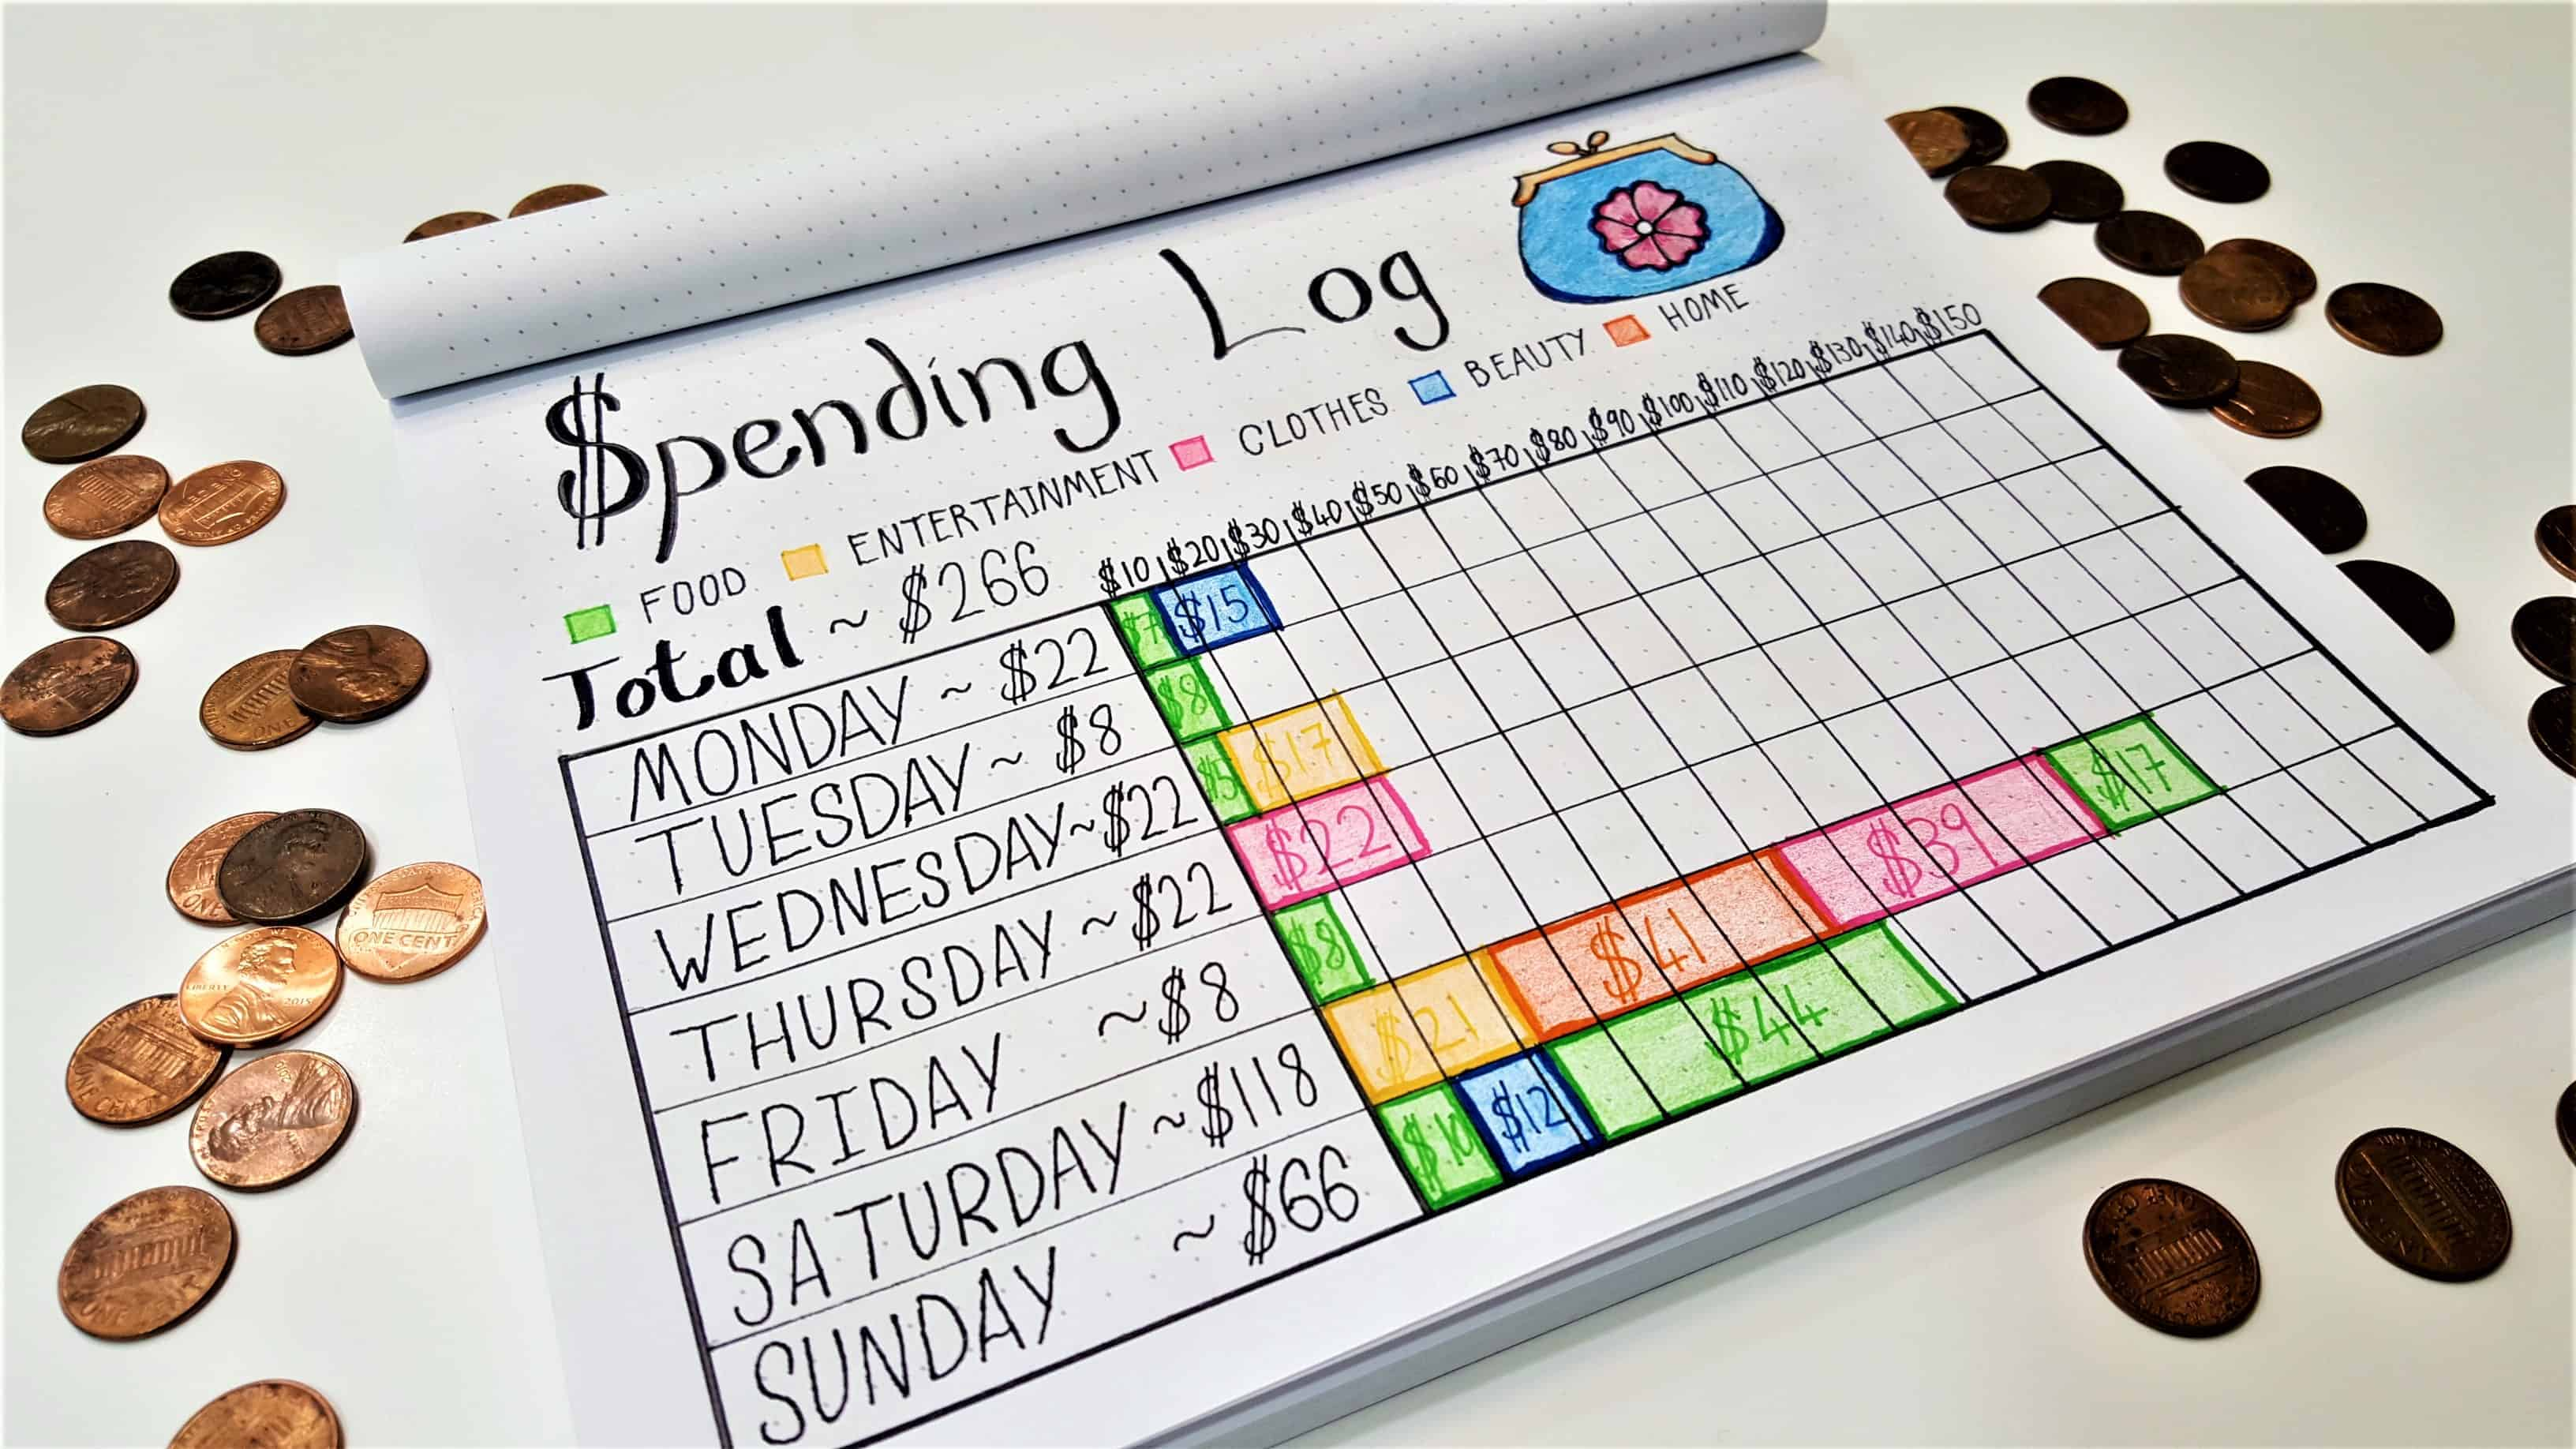 Bullet Journal Ideas to Make Life Easier - Weekly Spending Log Layout | How to use your bullet journal to keep track of your budget and savings. Financial planning using your bullet journal!